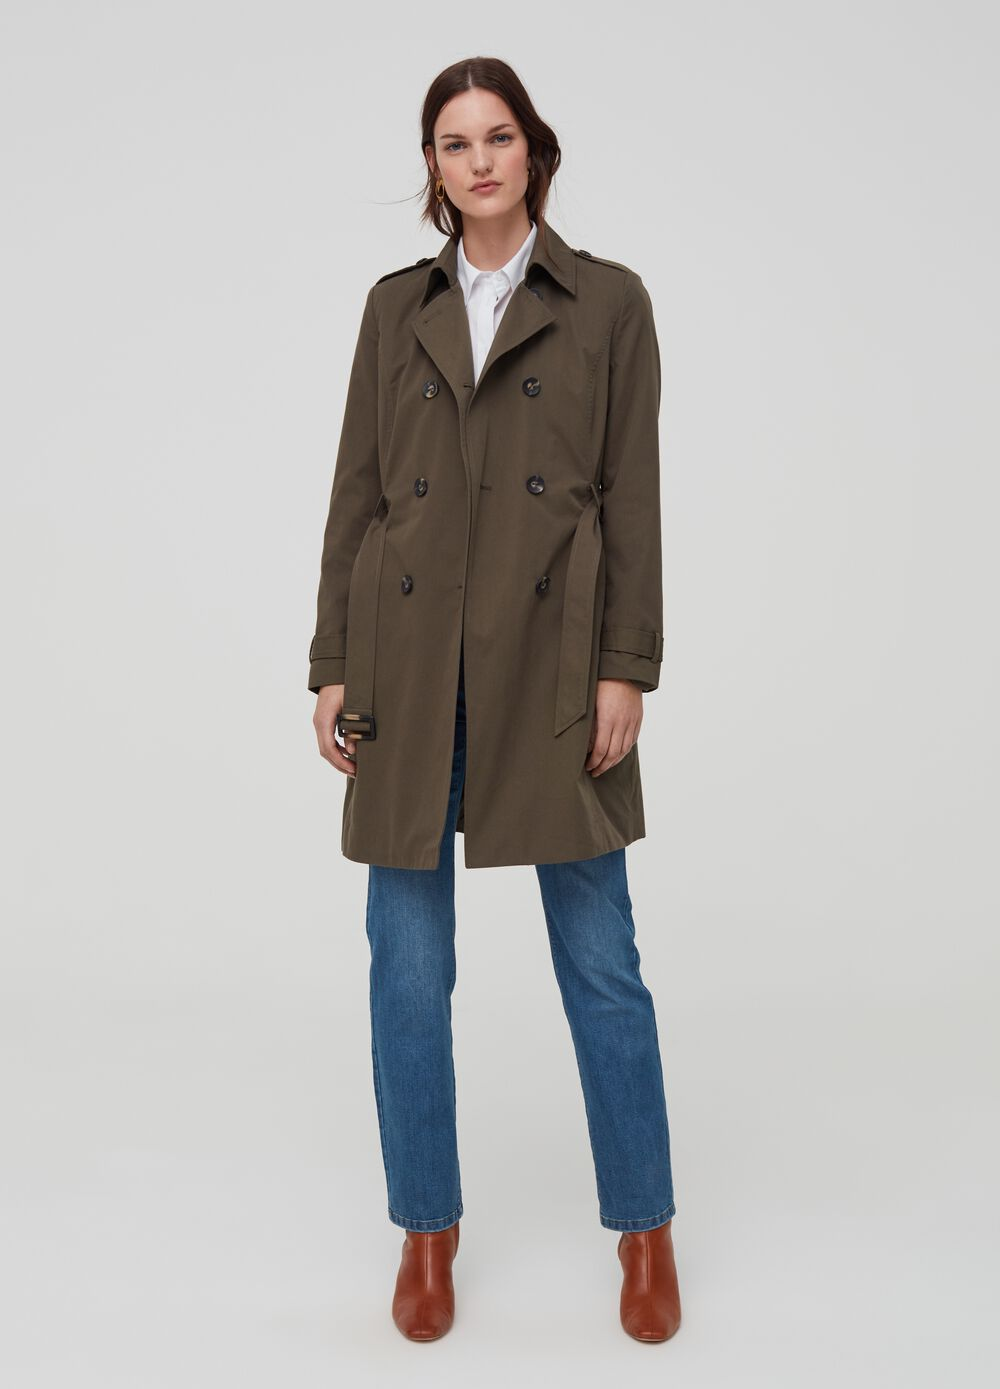 Trench coat with belt at the waist